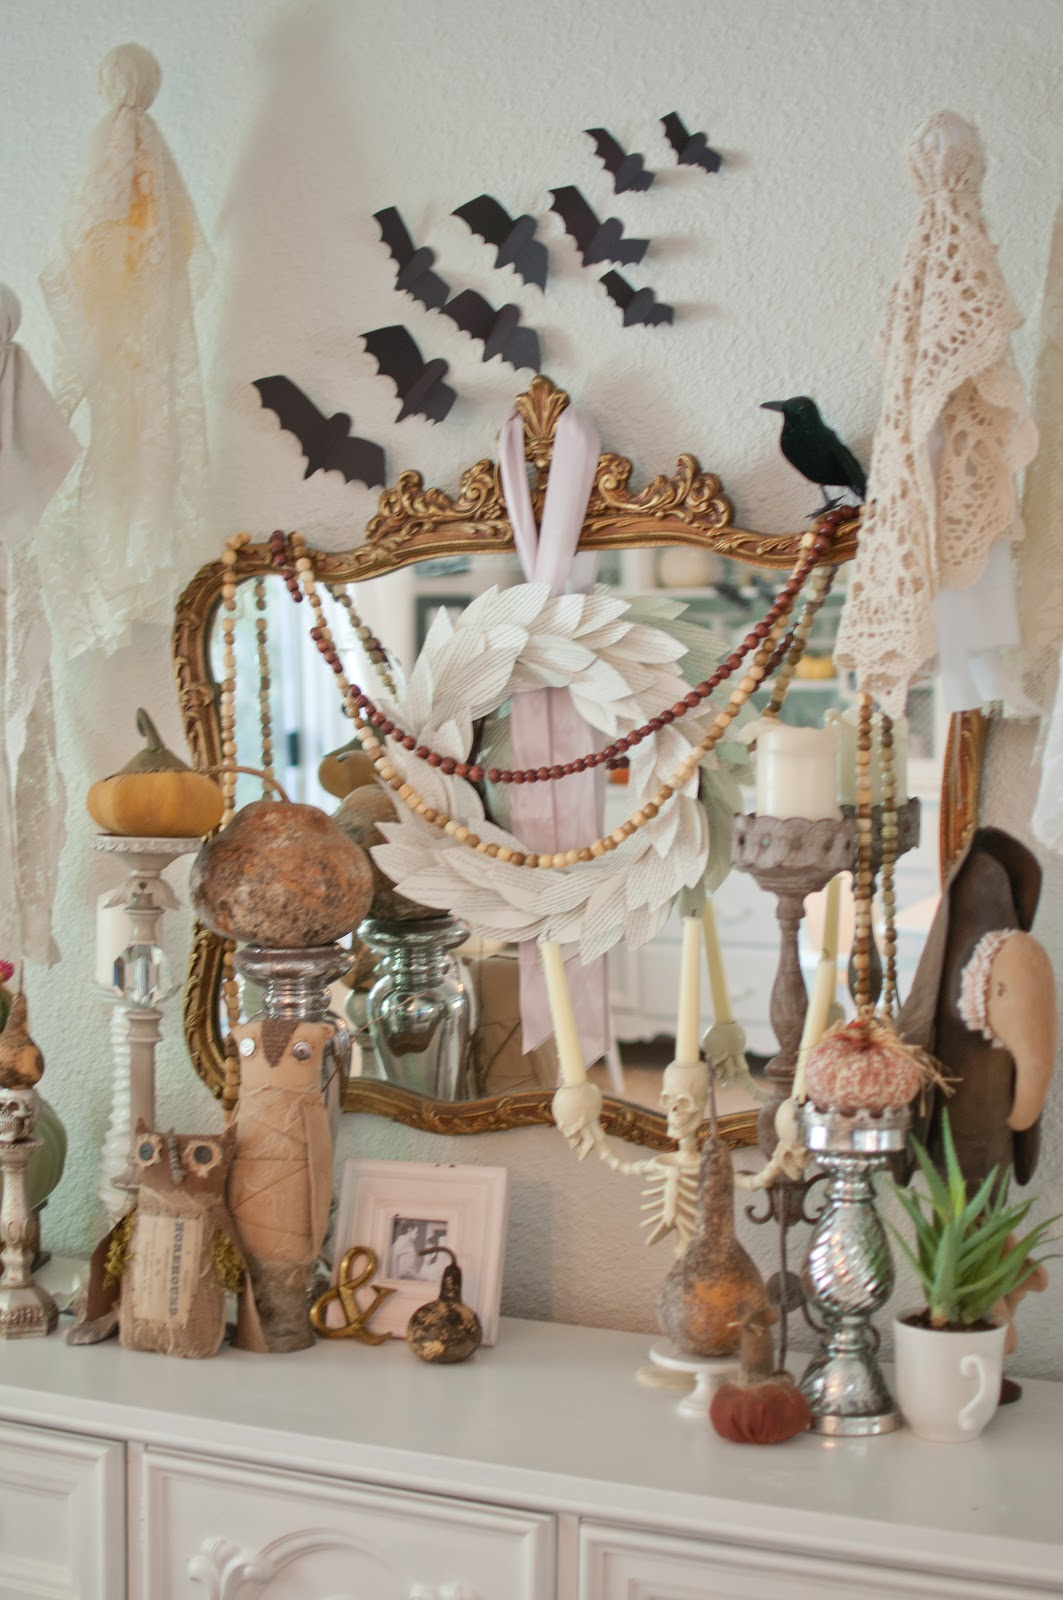 35 fall mantel decorating ideas halloween mantel decorations - Unique Halloween Decorations